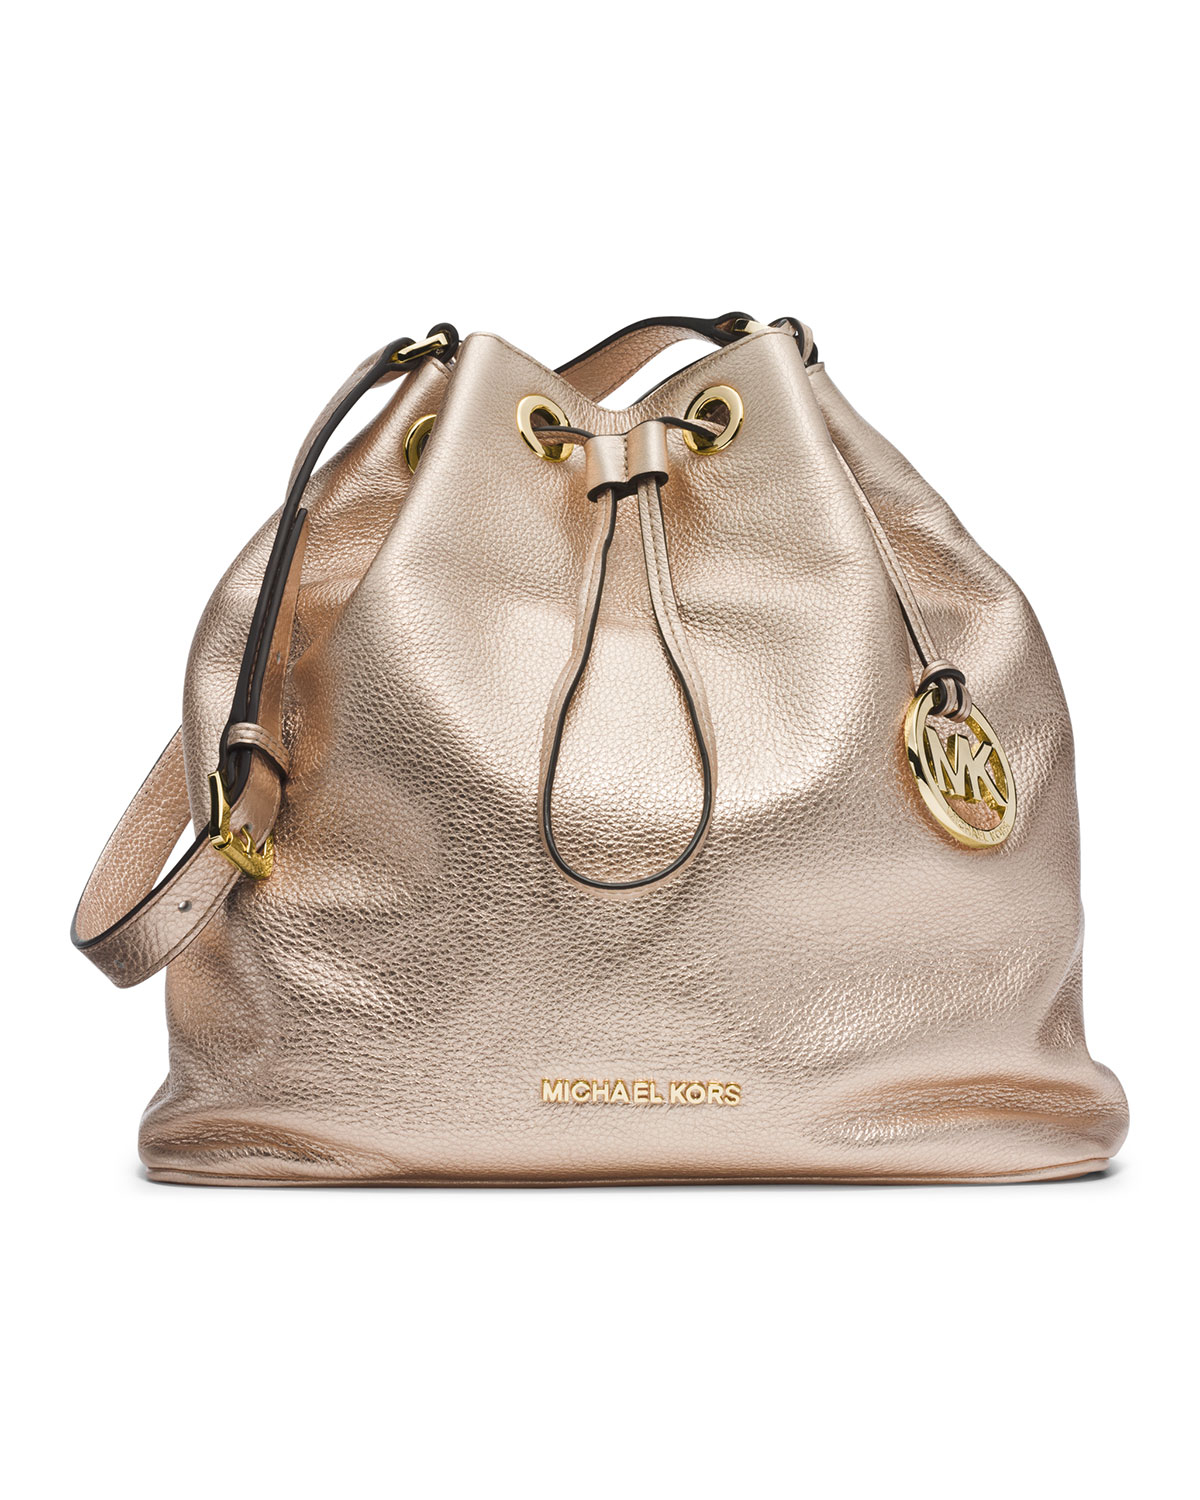 Michael kors Michael Large Jules Drawstring Shoulder Bag in ...